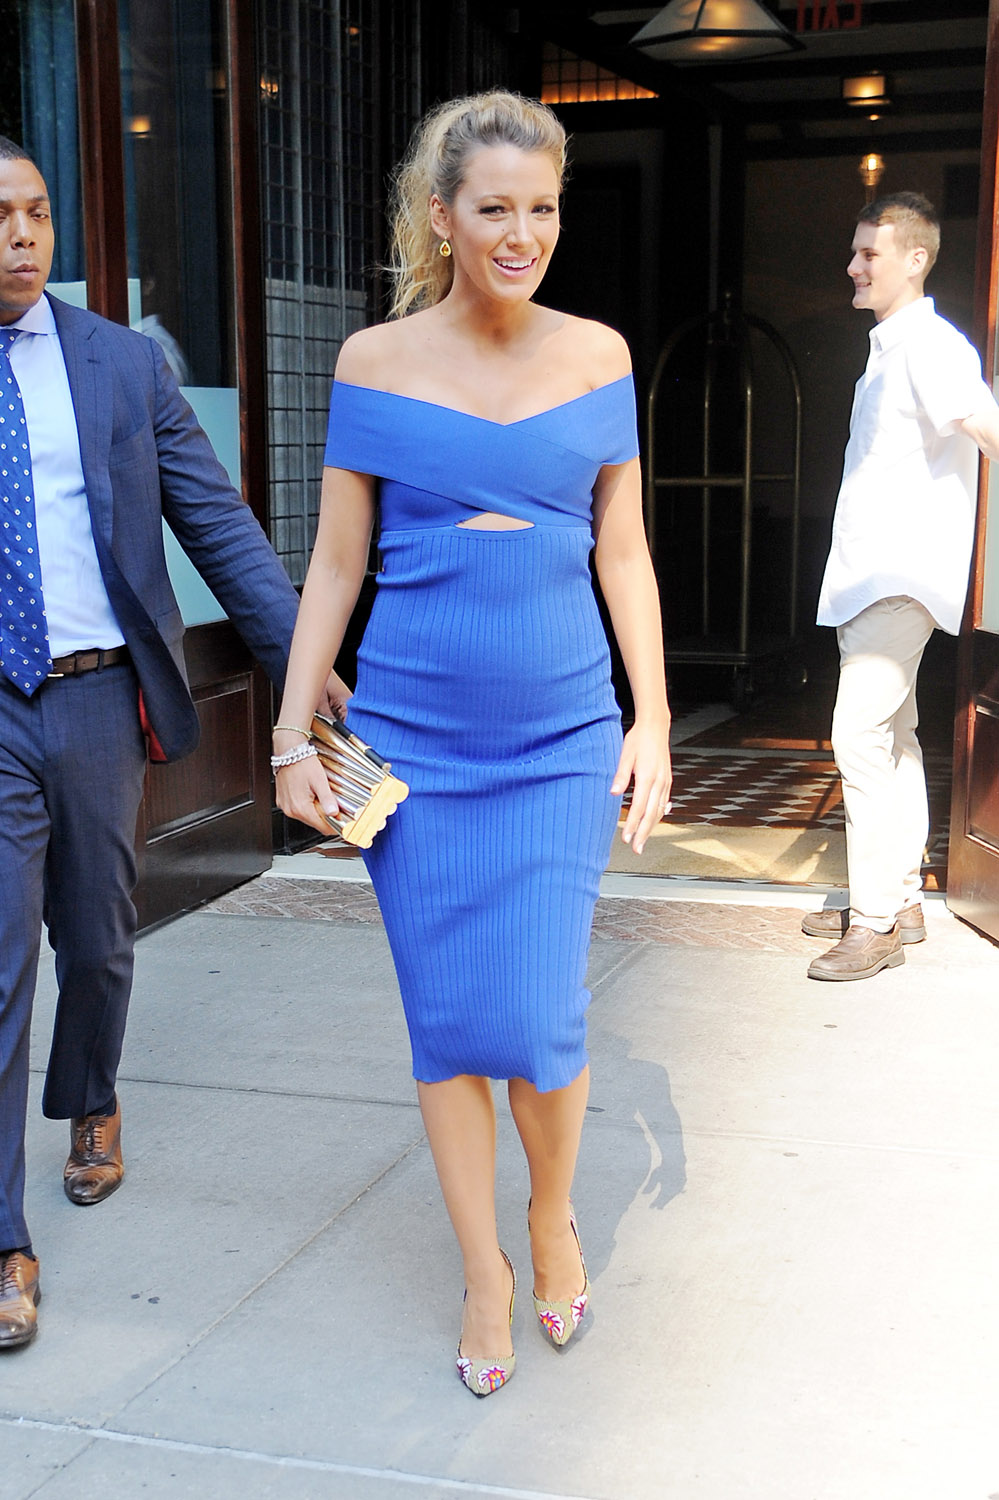 cdbaedacf9 Blake Lively s Pregnancy Style Decoded